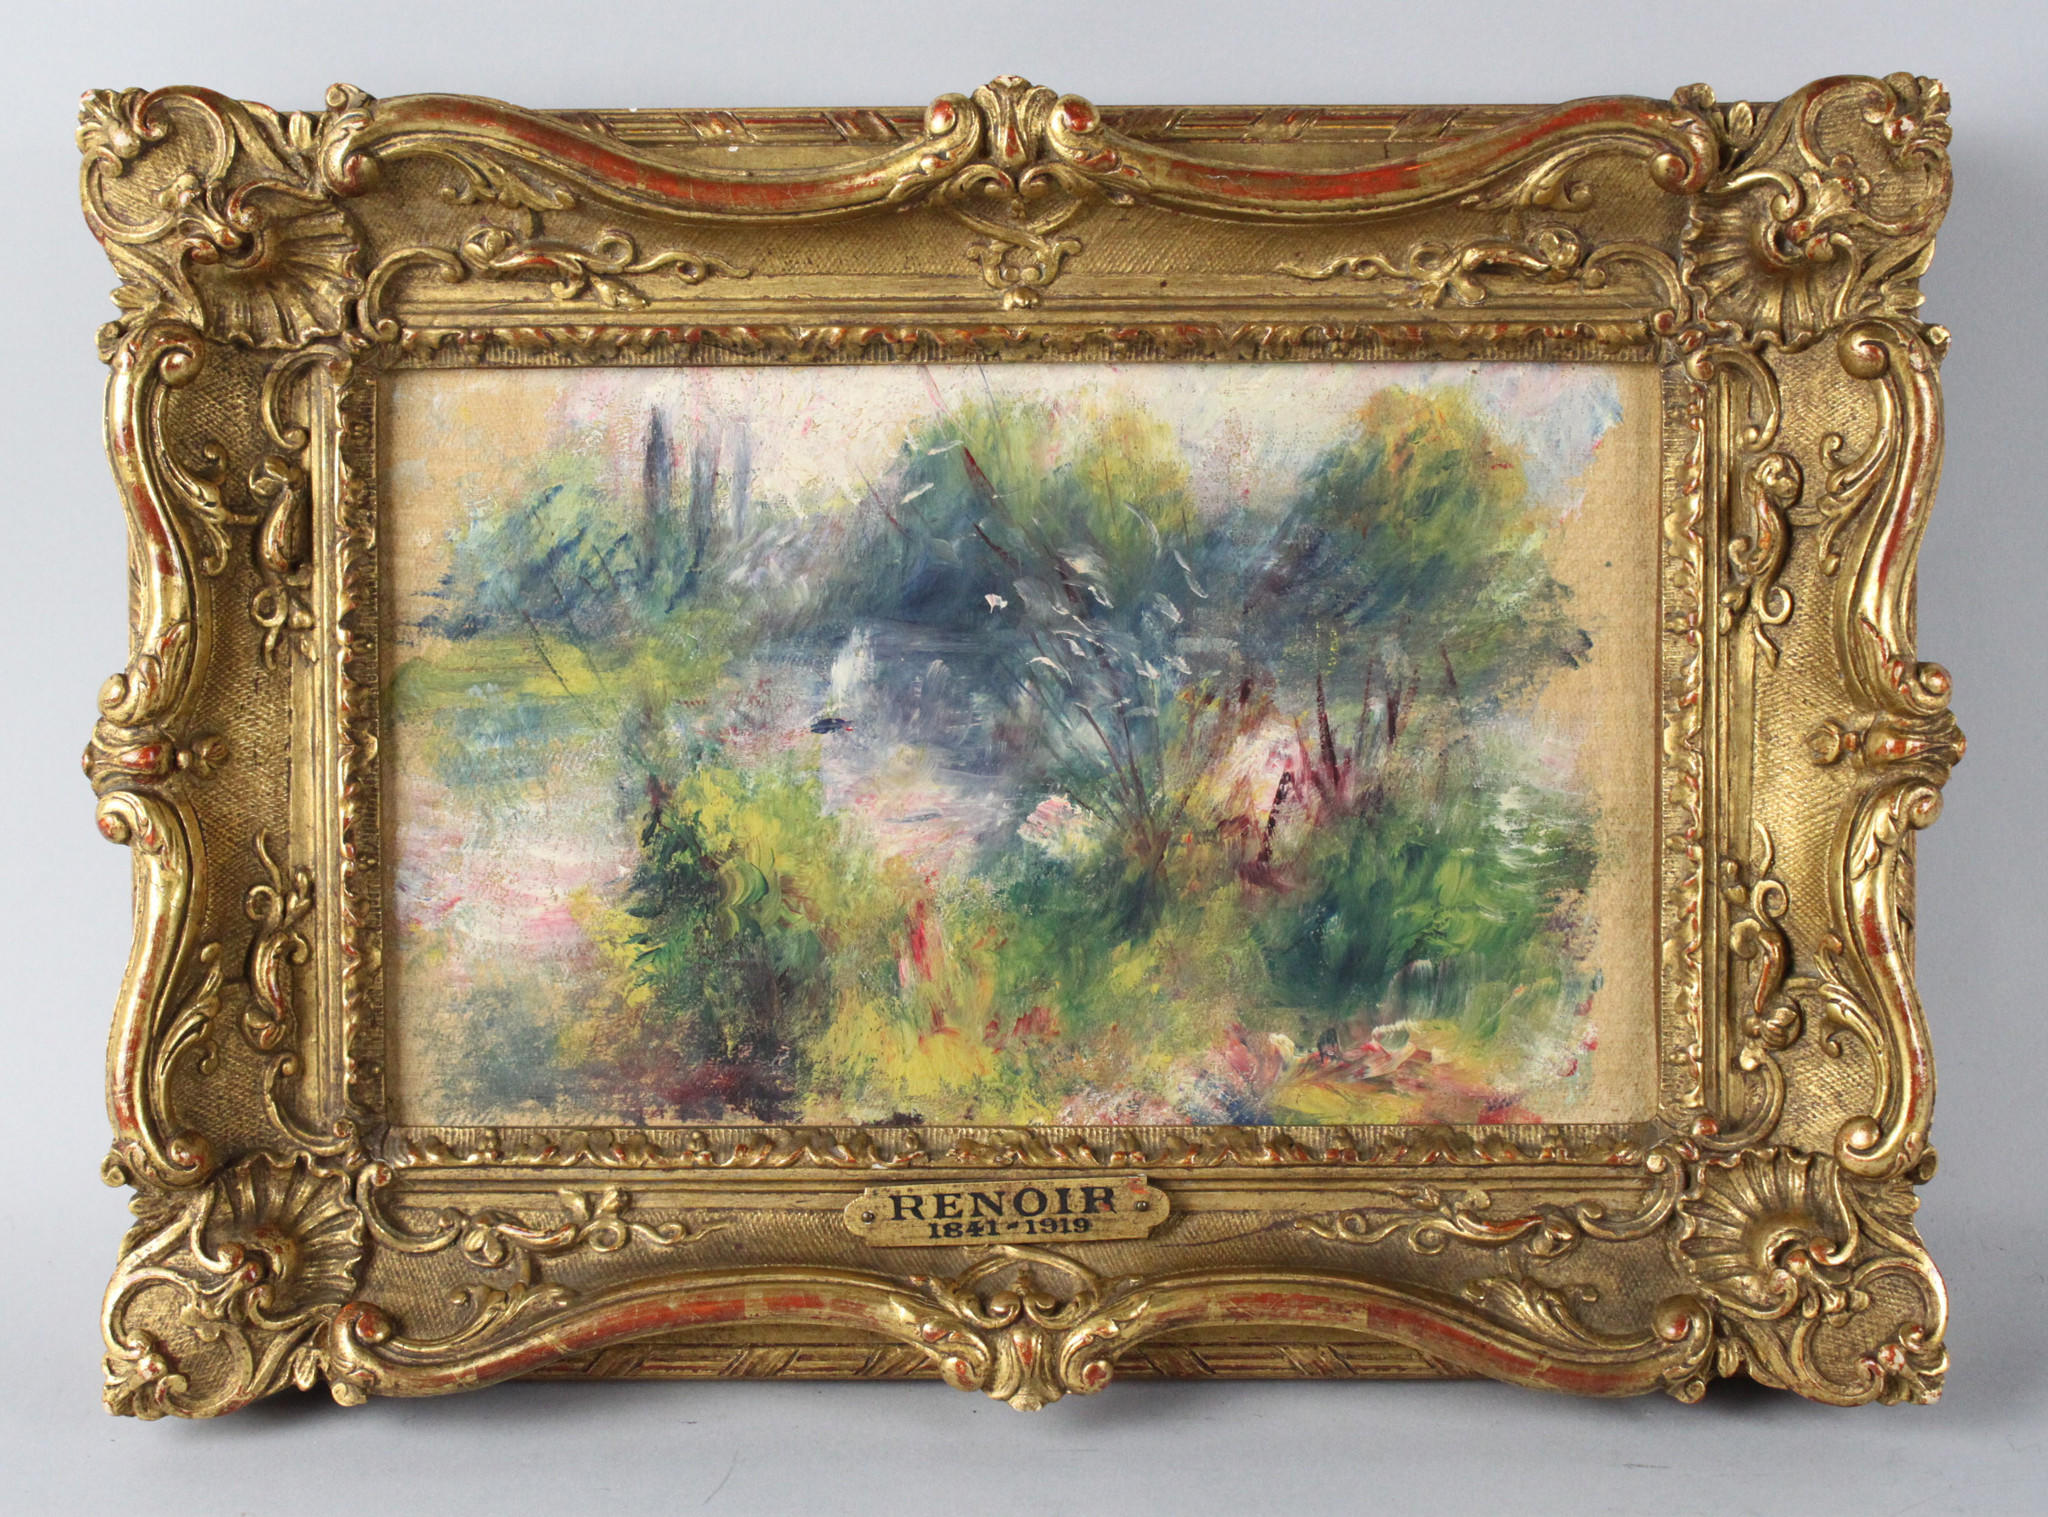 "The Renoir painting ""Paysage Bords de Seine"" is now assessed at $22,000."